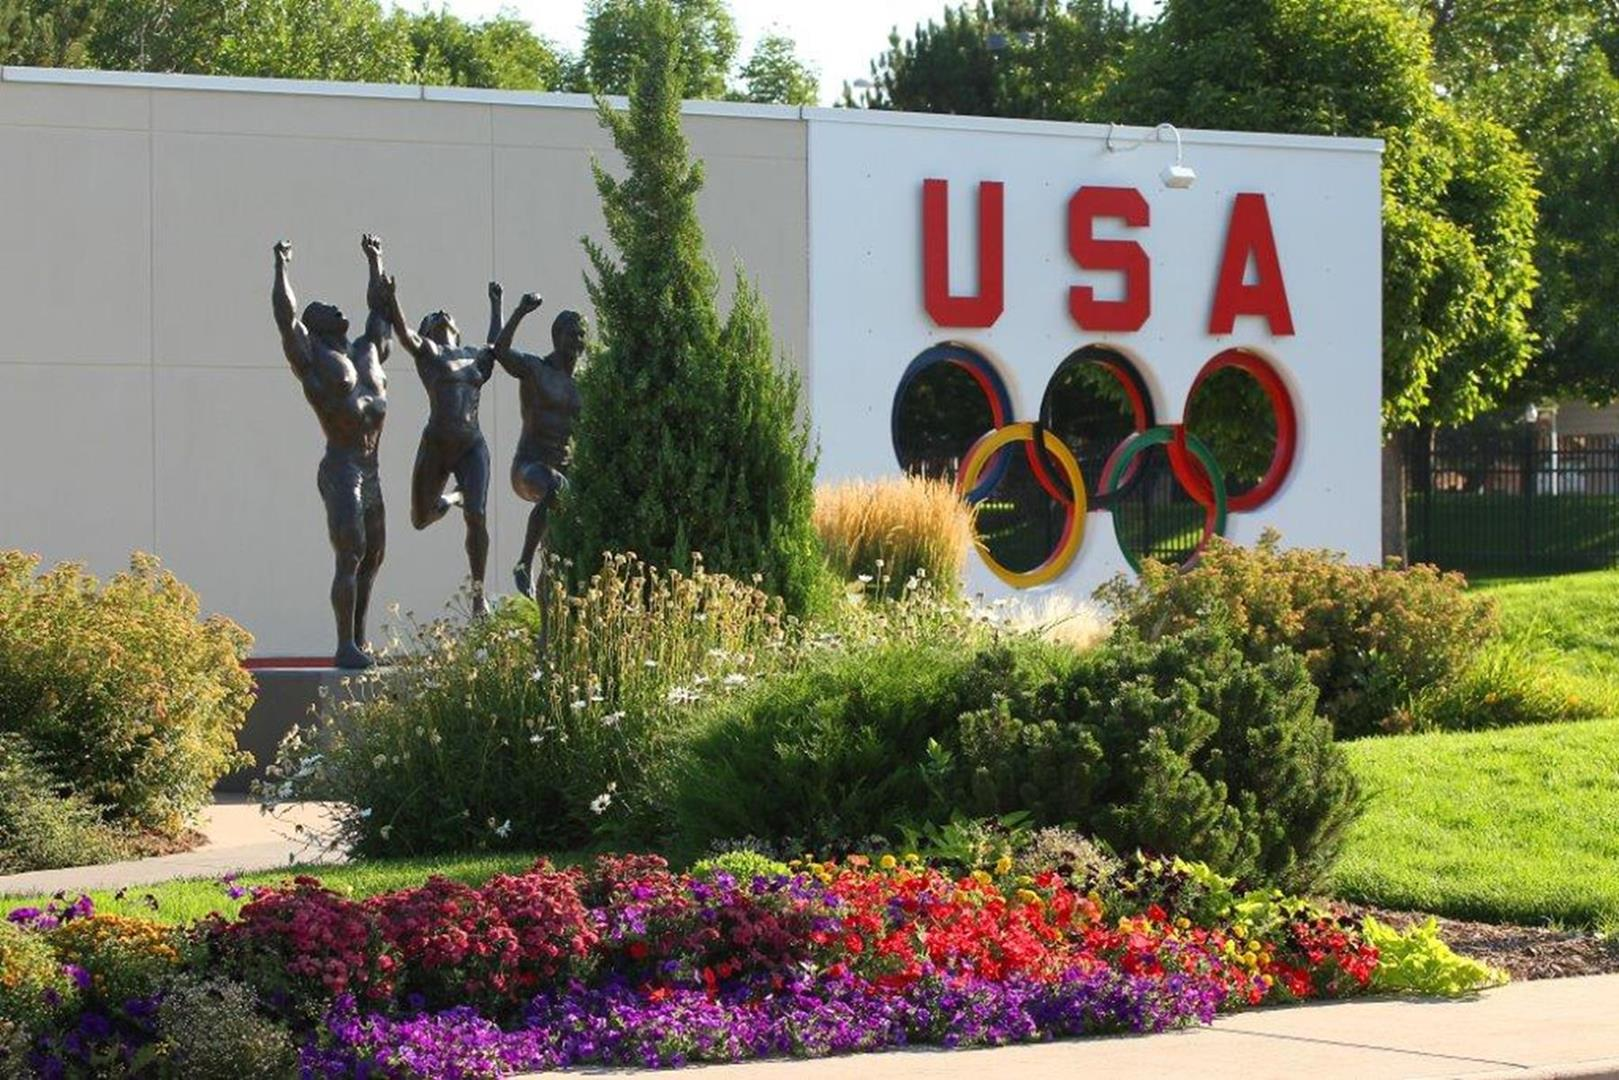 Colorado Springs Is Olympic City Usa And More Sports